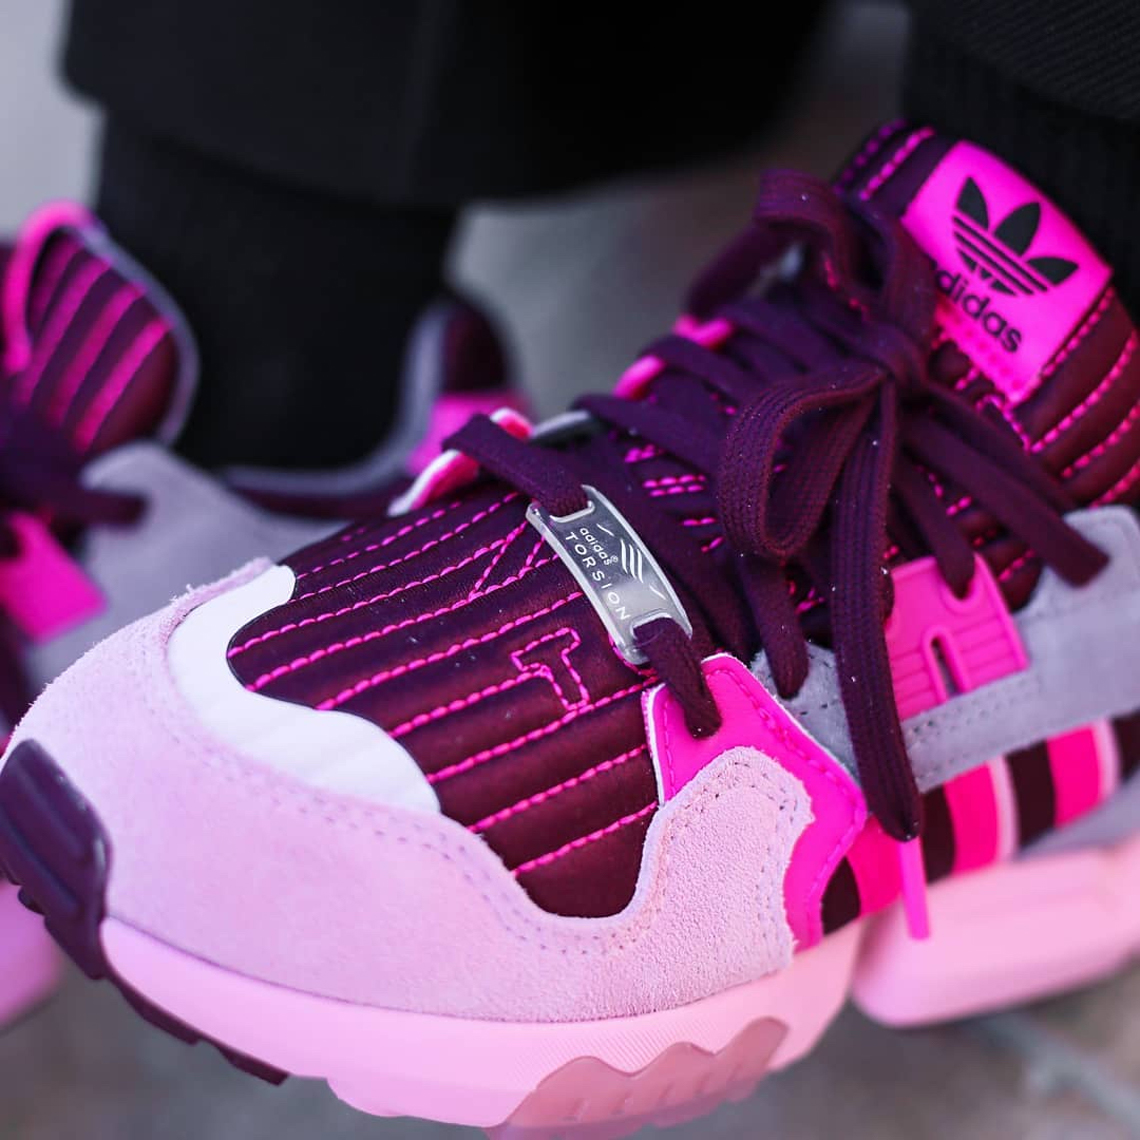 adidas zx ef shoes